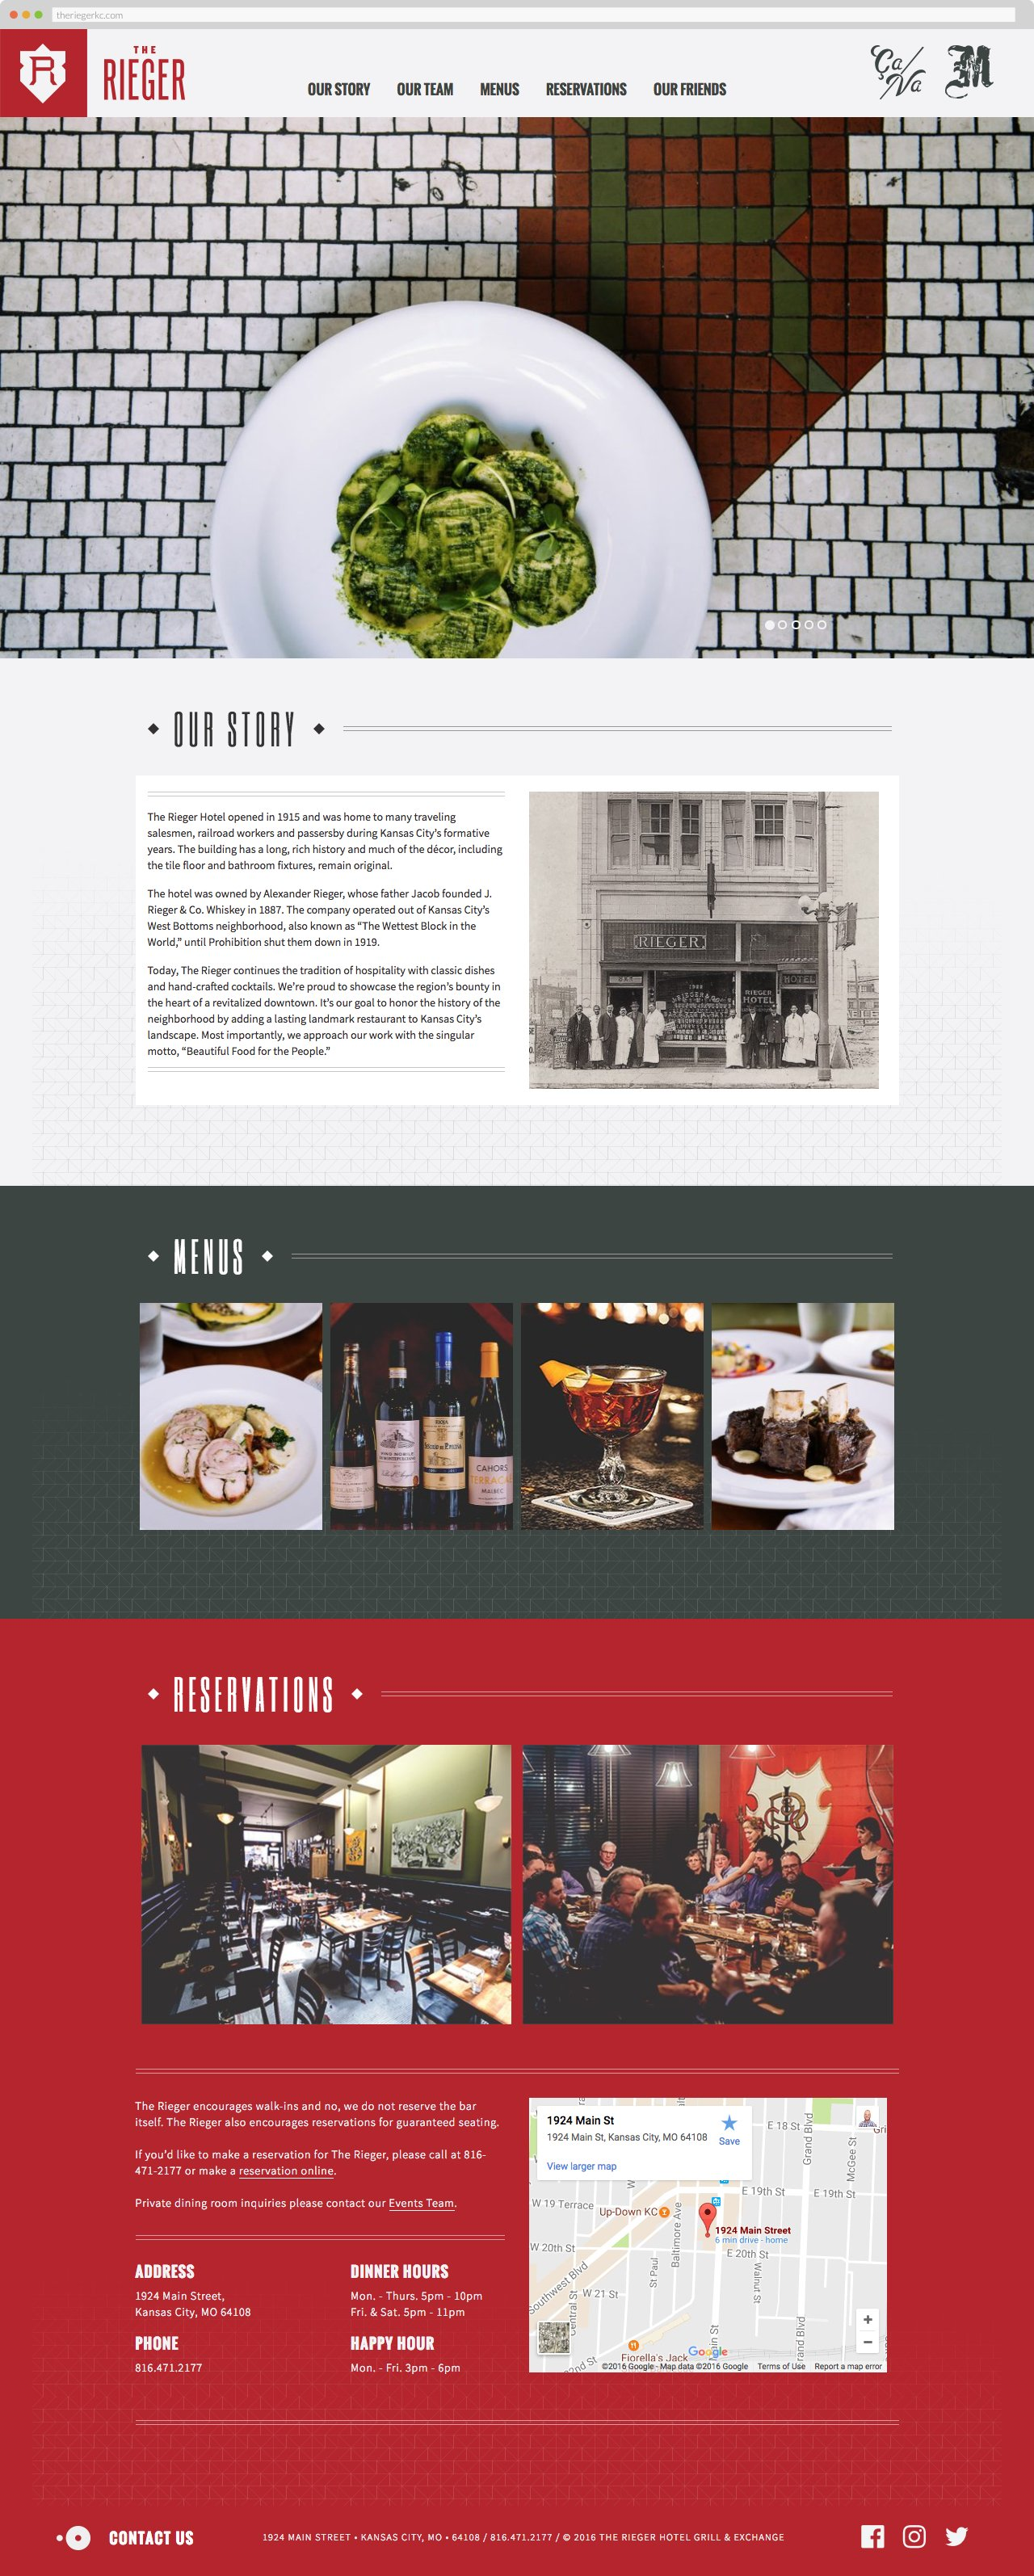 The Rieger - Homepage